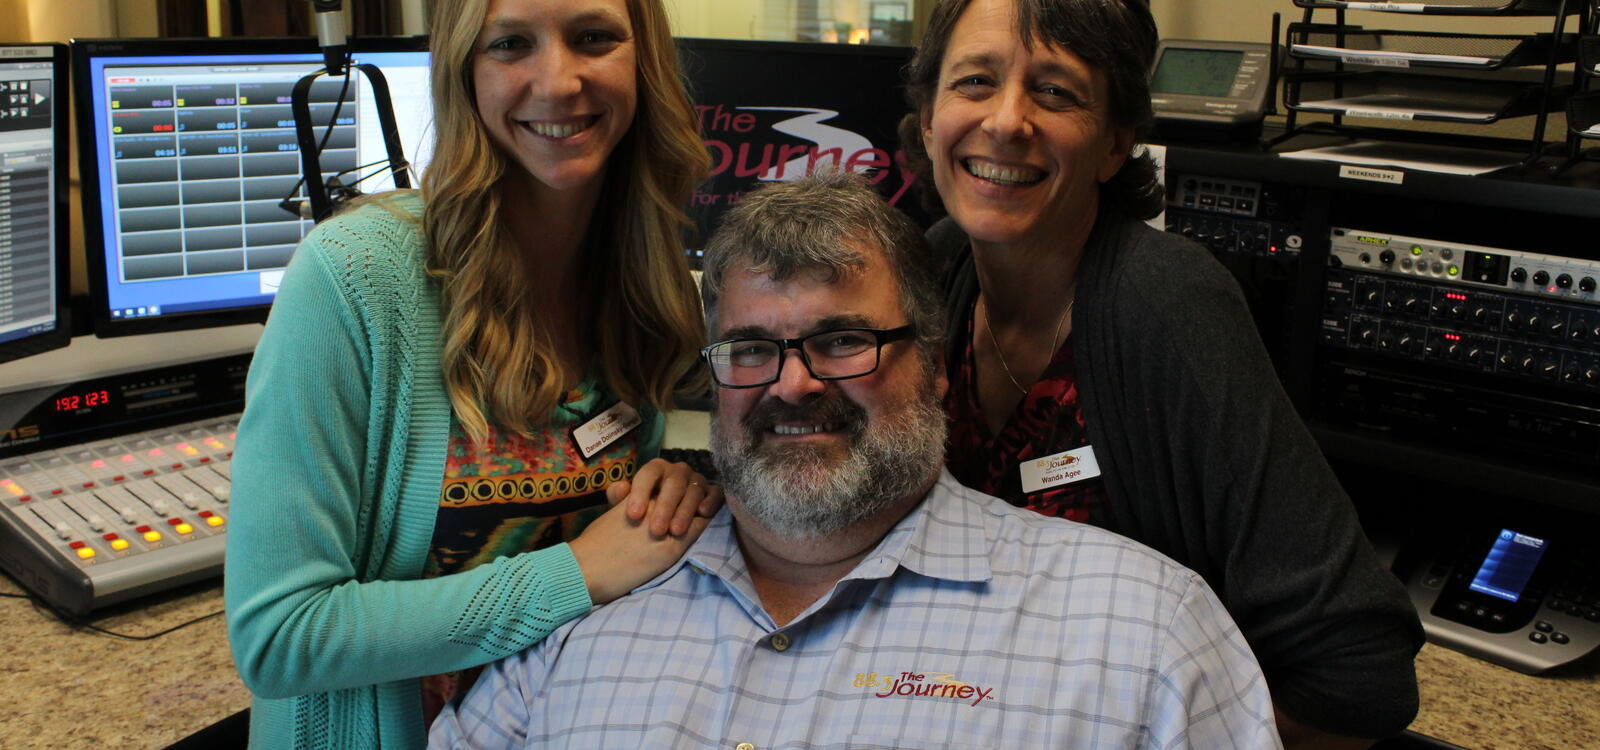 Danae Songy and Wanda Agee posing behind Mike Agee inside the radio station